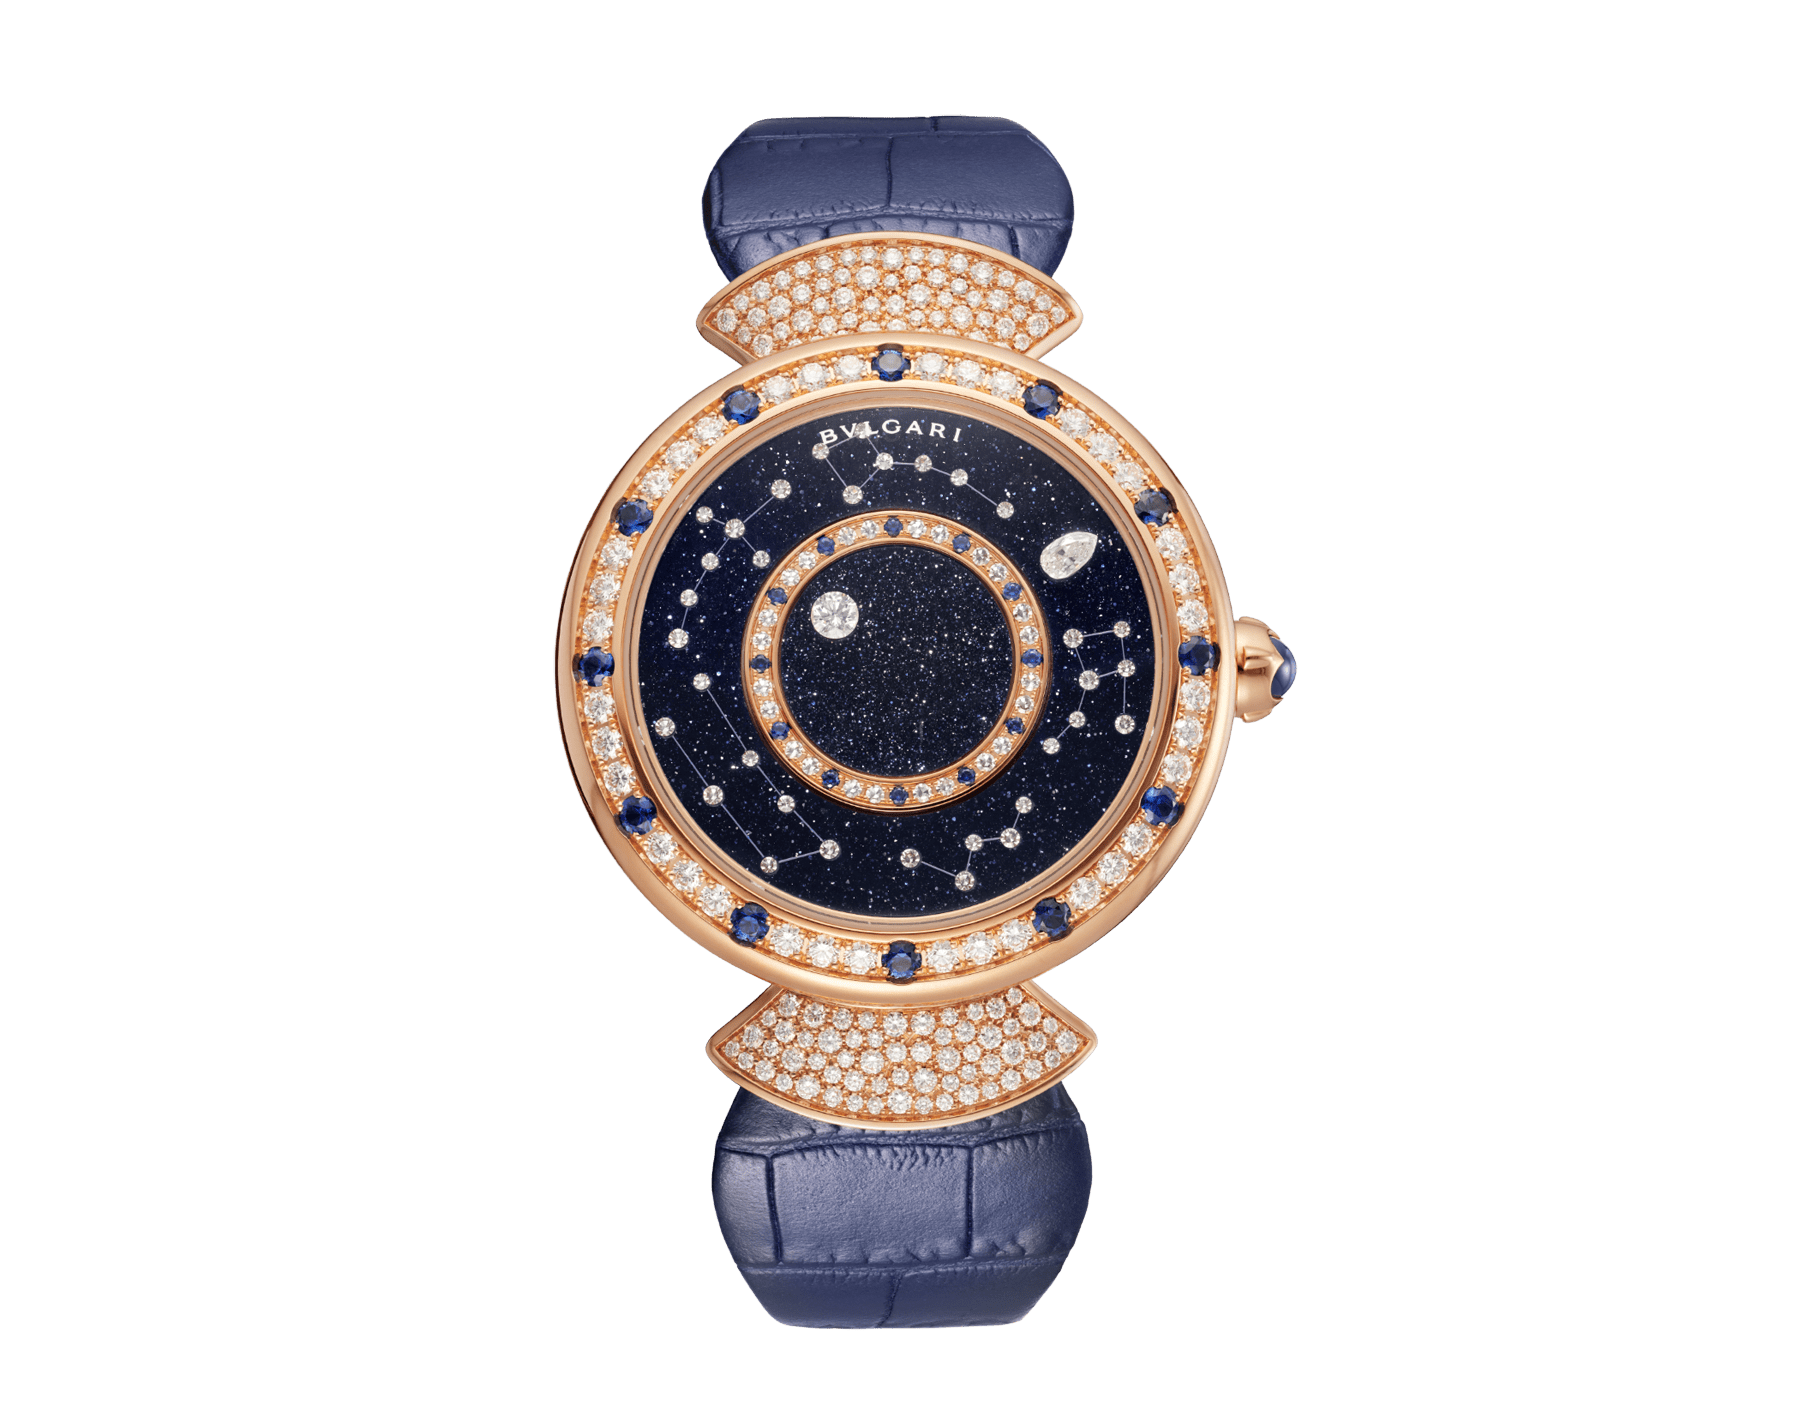 DIVAS' DREAM watch with mechanical manufacture movement, automatic winding, 18 kt rose gold case set with round brilliant-cut diamonds and sapphires, aventurine rotating discs with diamonds and printed constellations and dark blue alligator bracelet 102843 image 1